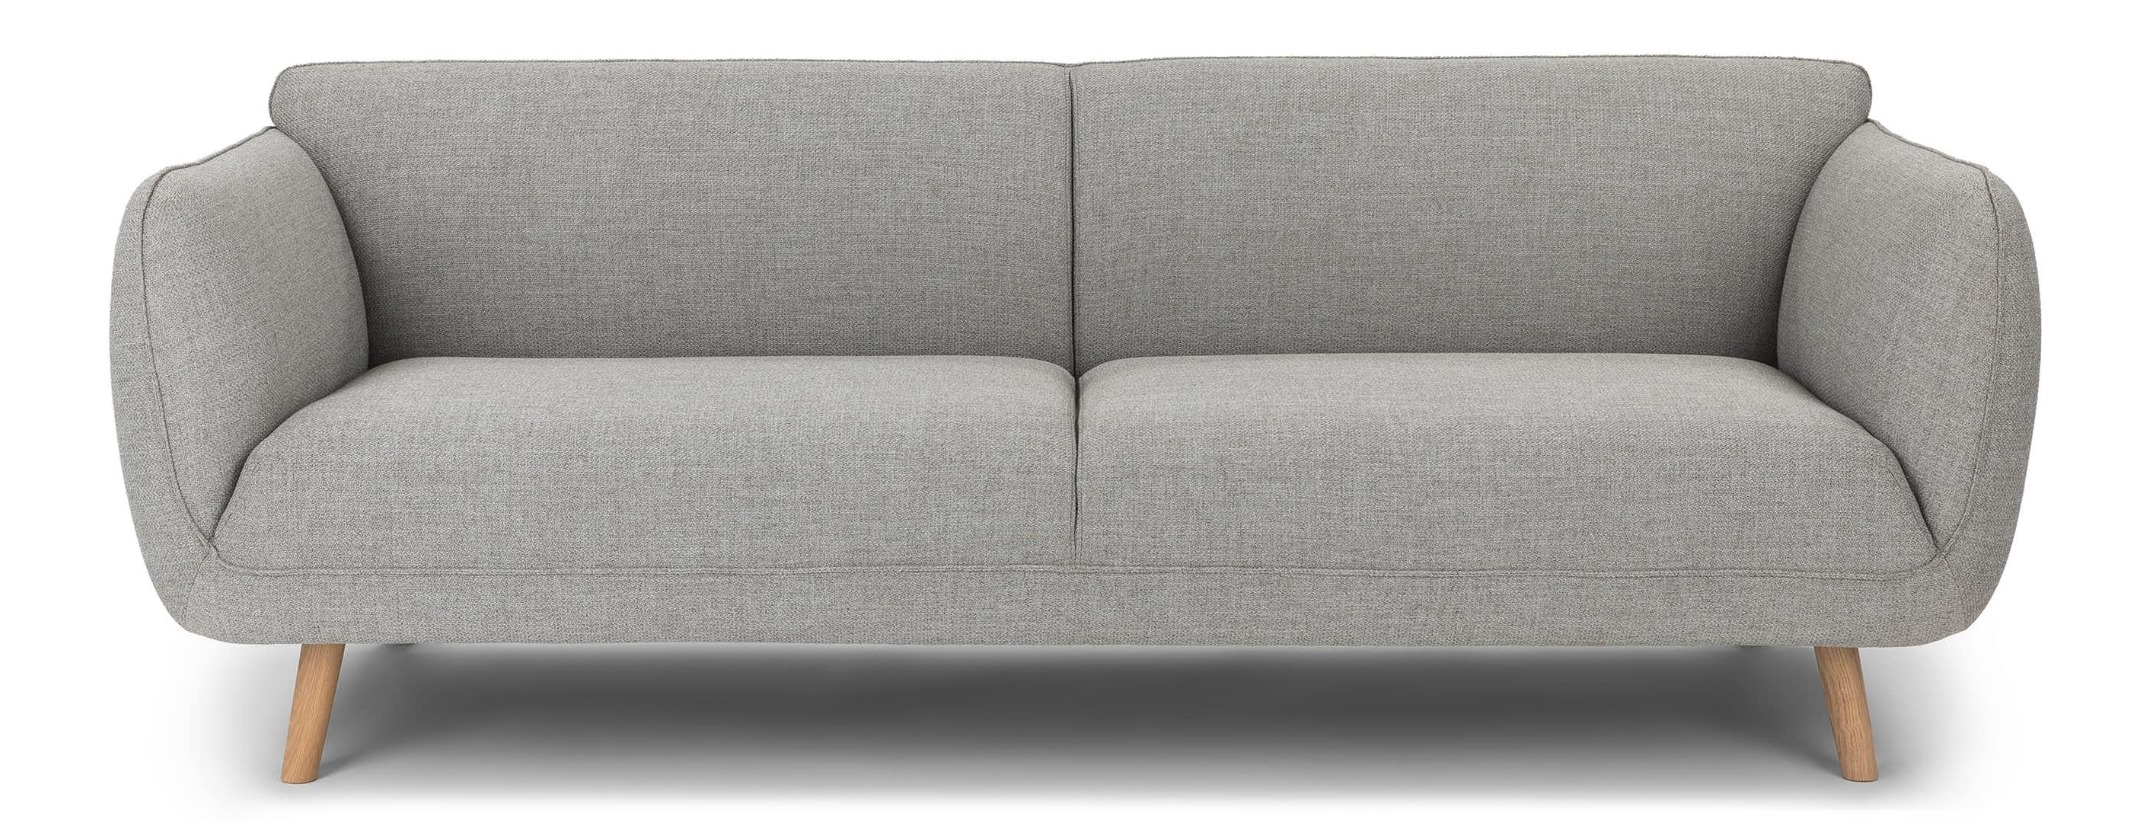 Haro Vapor Gray Sofa from Article